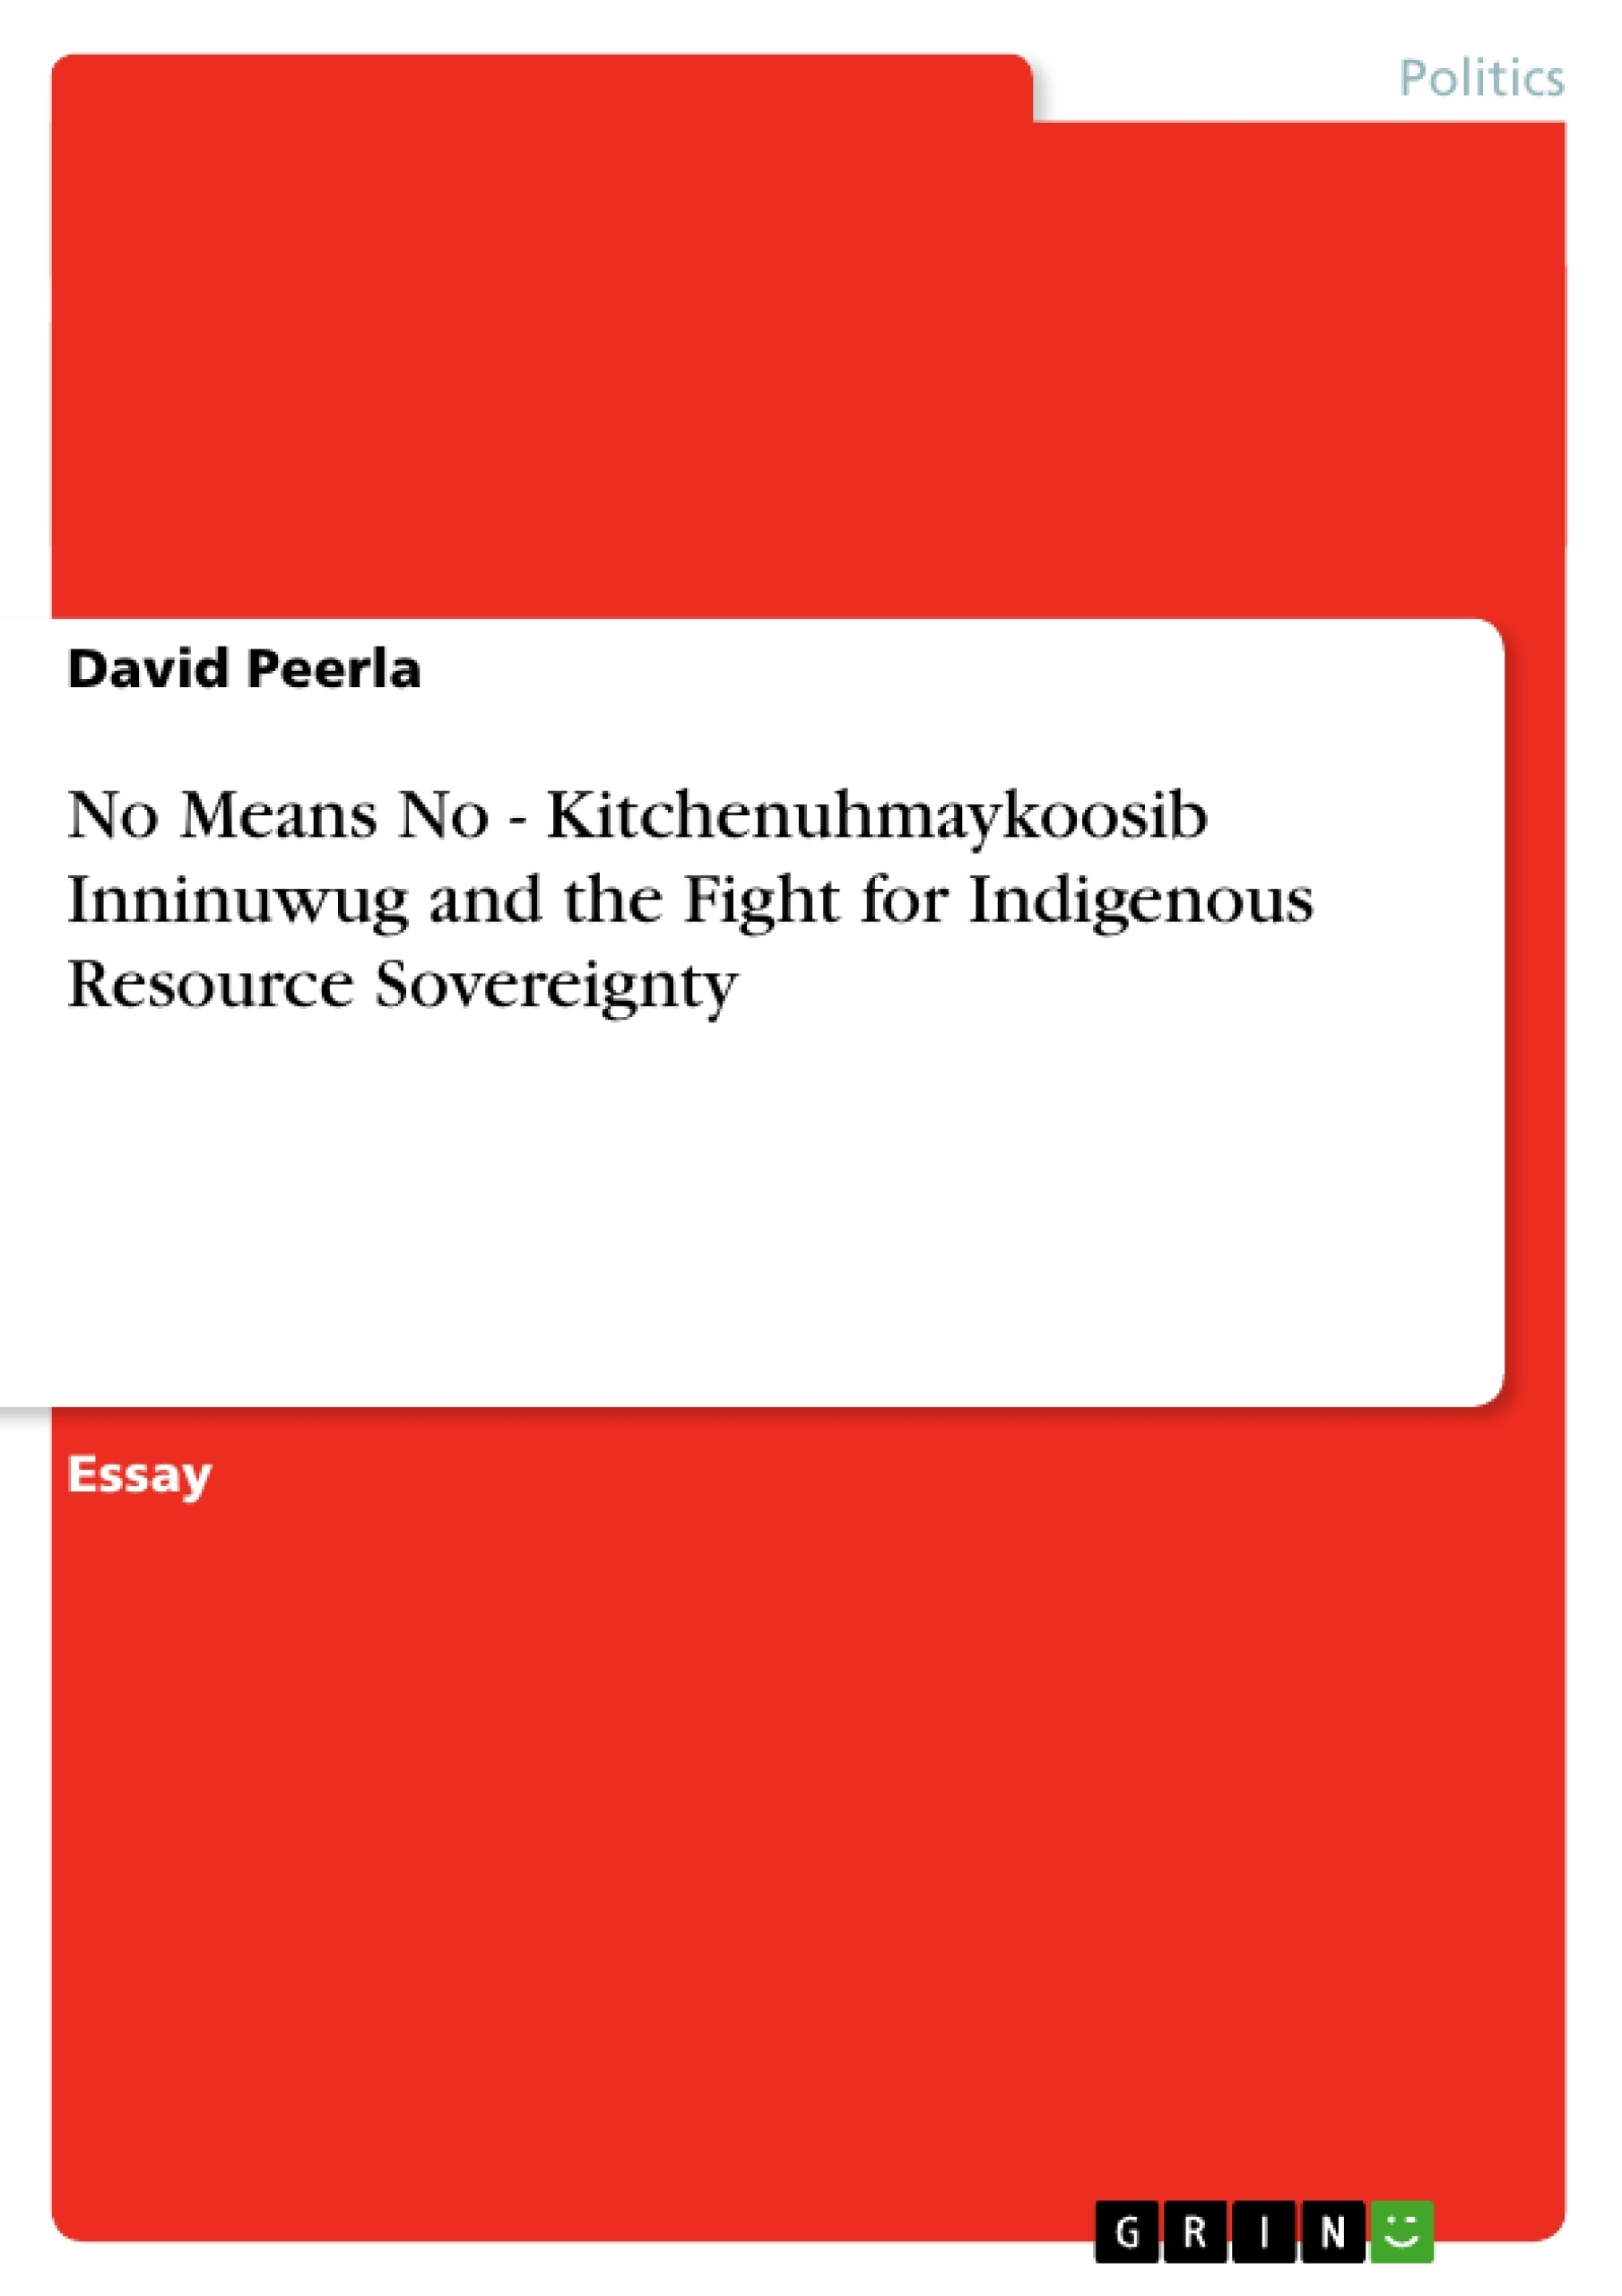 Title: No Means No - Kitchenuhmaykoosib Inninuwug and the Fight for Indigenous Resource Sovereignty